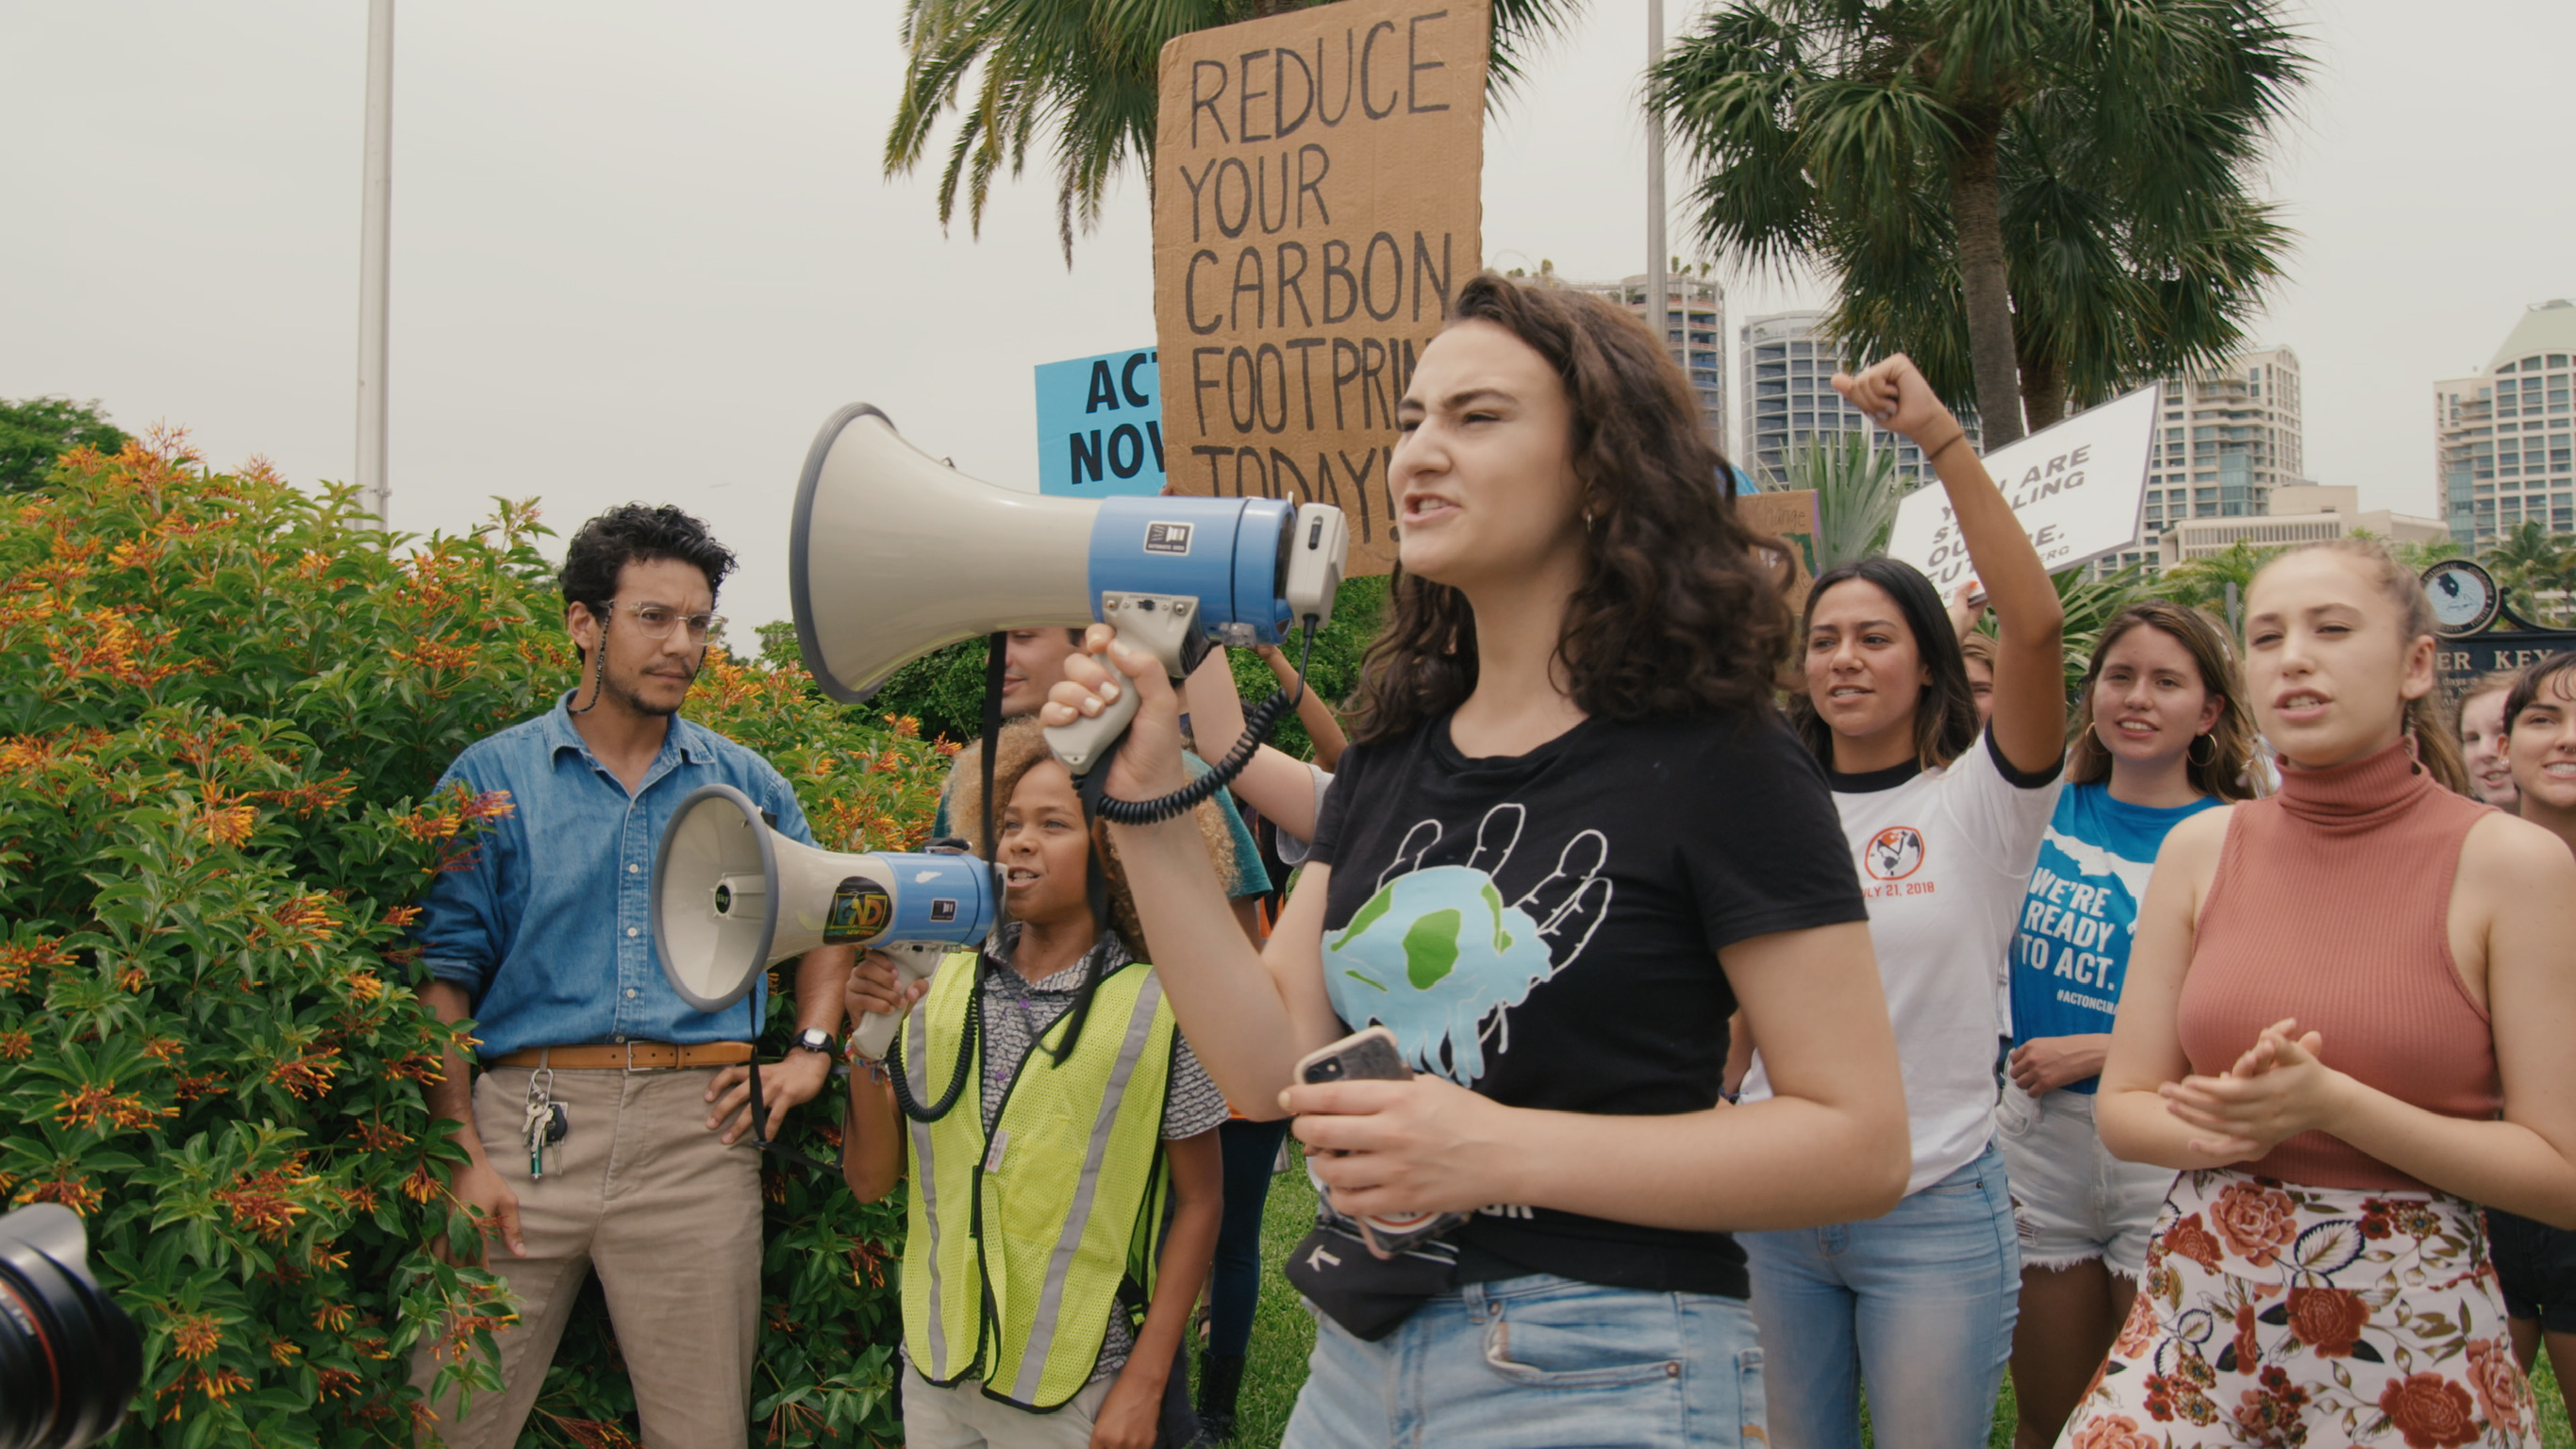 Seattle's 17-year-old climate champion isn't striking for fun: 'I'm striking for my generation's survival'